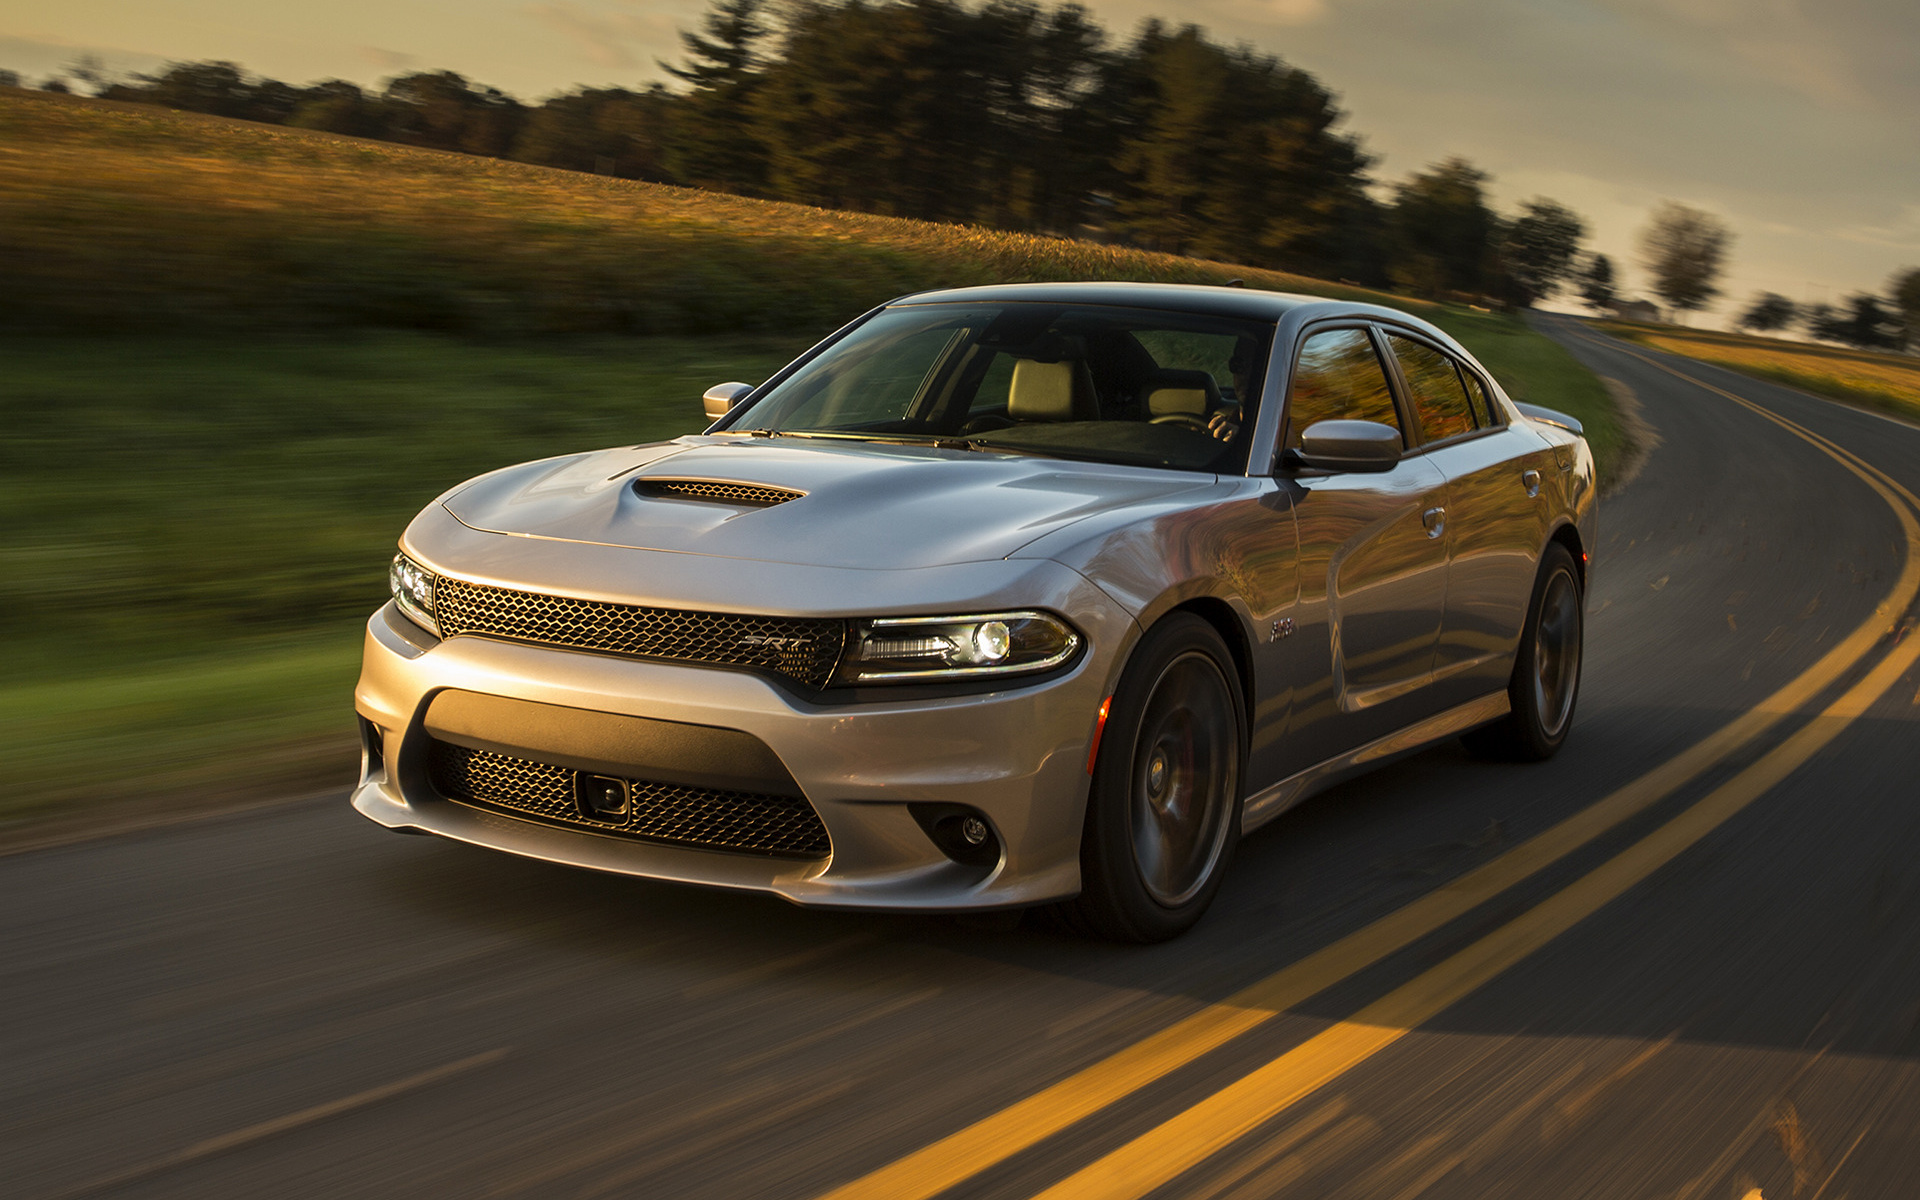 2015 Dodge Charger Srt 392 Wallpapers And Hd Images